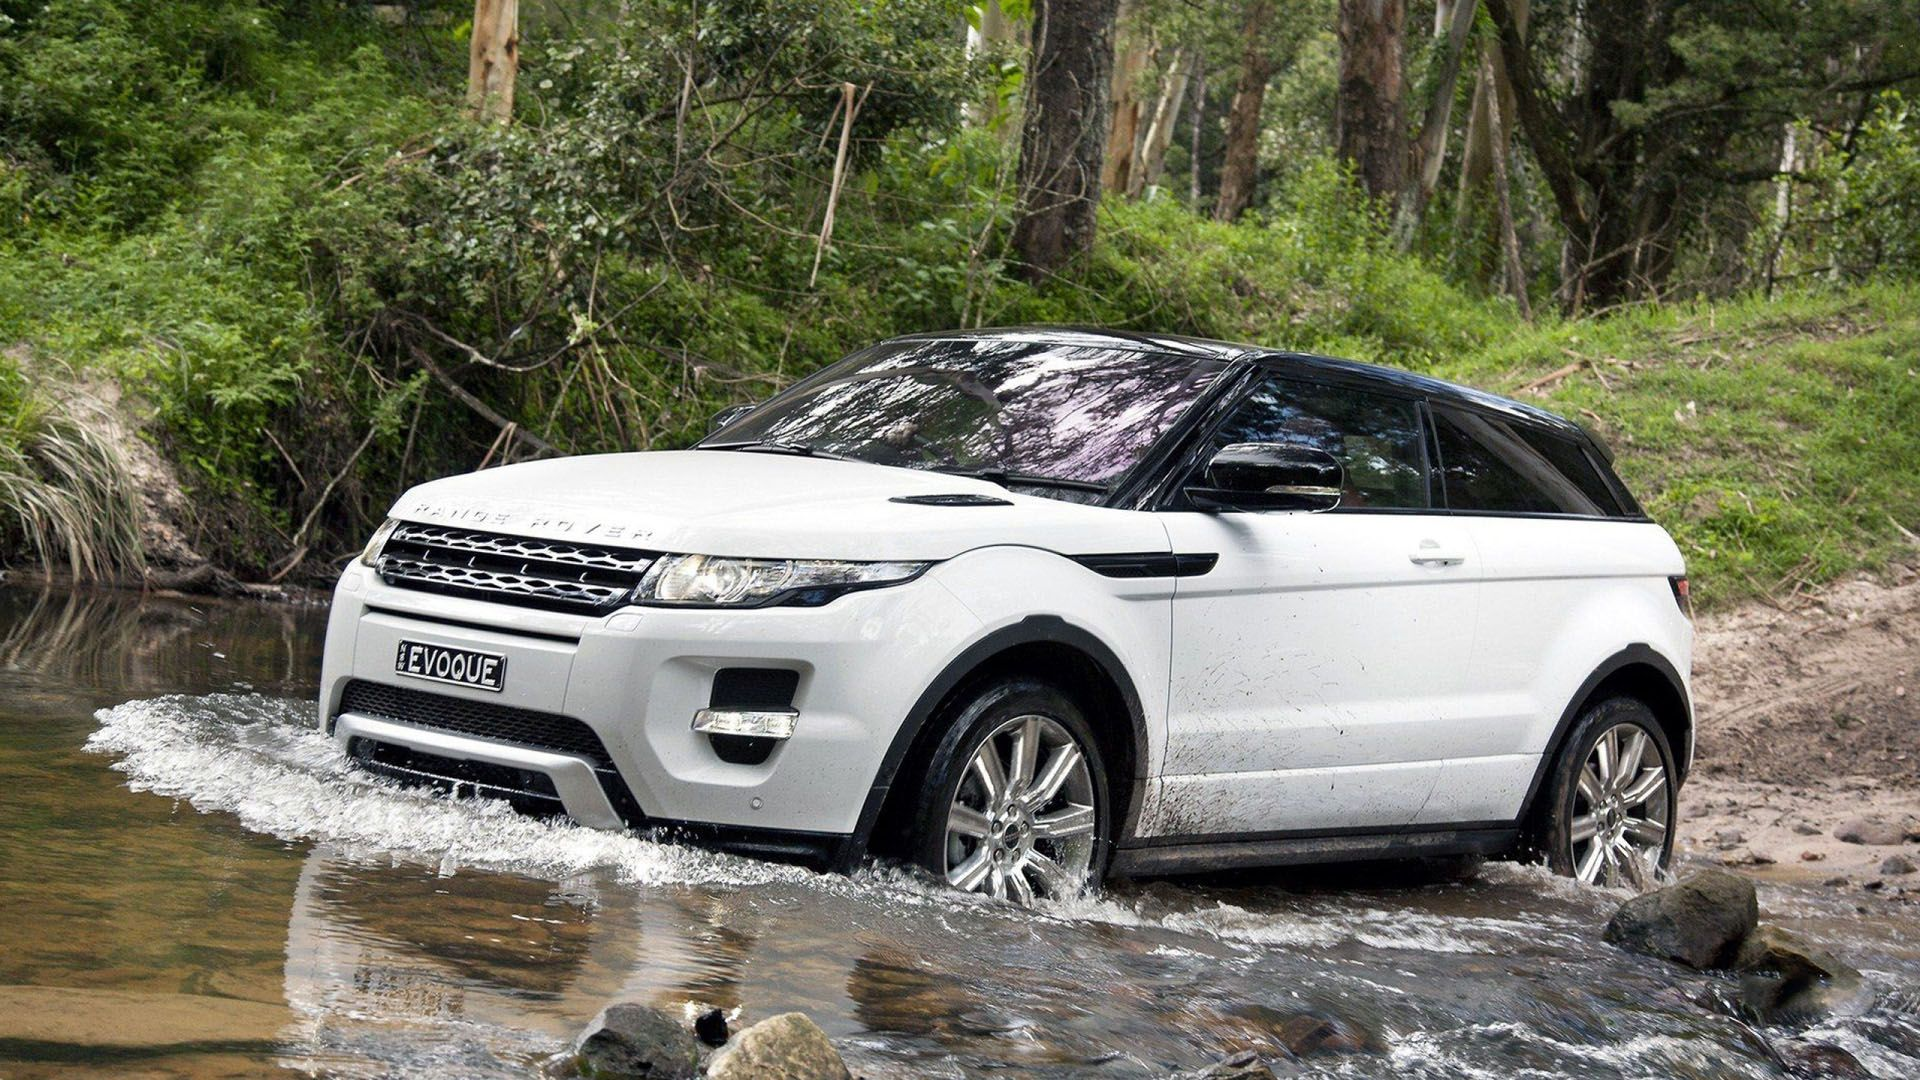 Range Rover Evoque Wallpapers Free Download Sweet Cars Suv Range